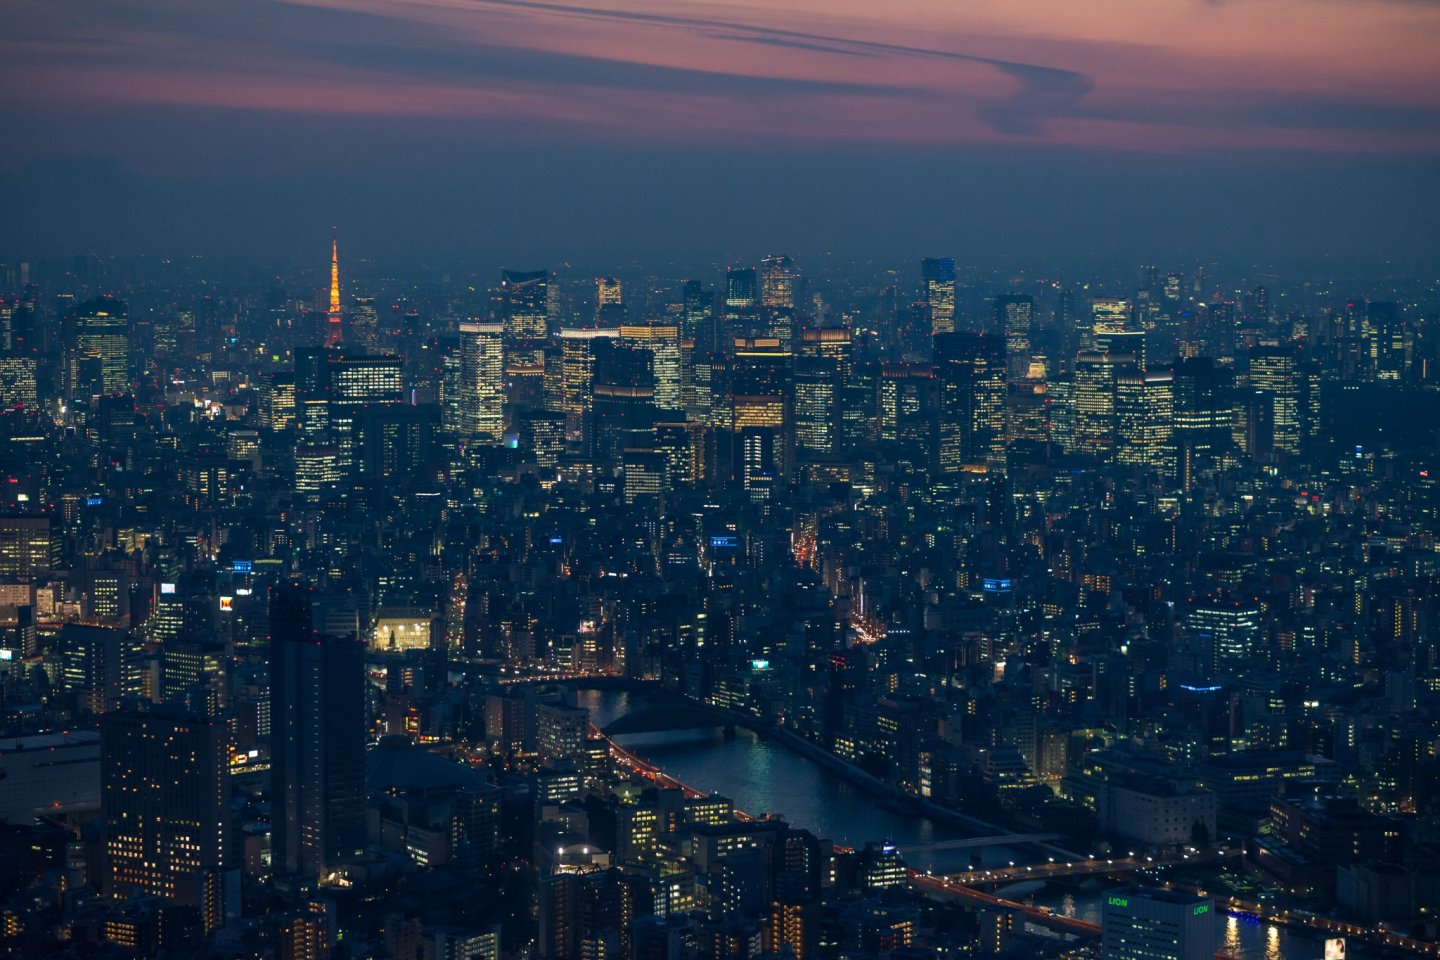 Dusk view from the Tokyo Skytree